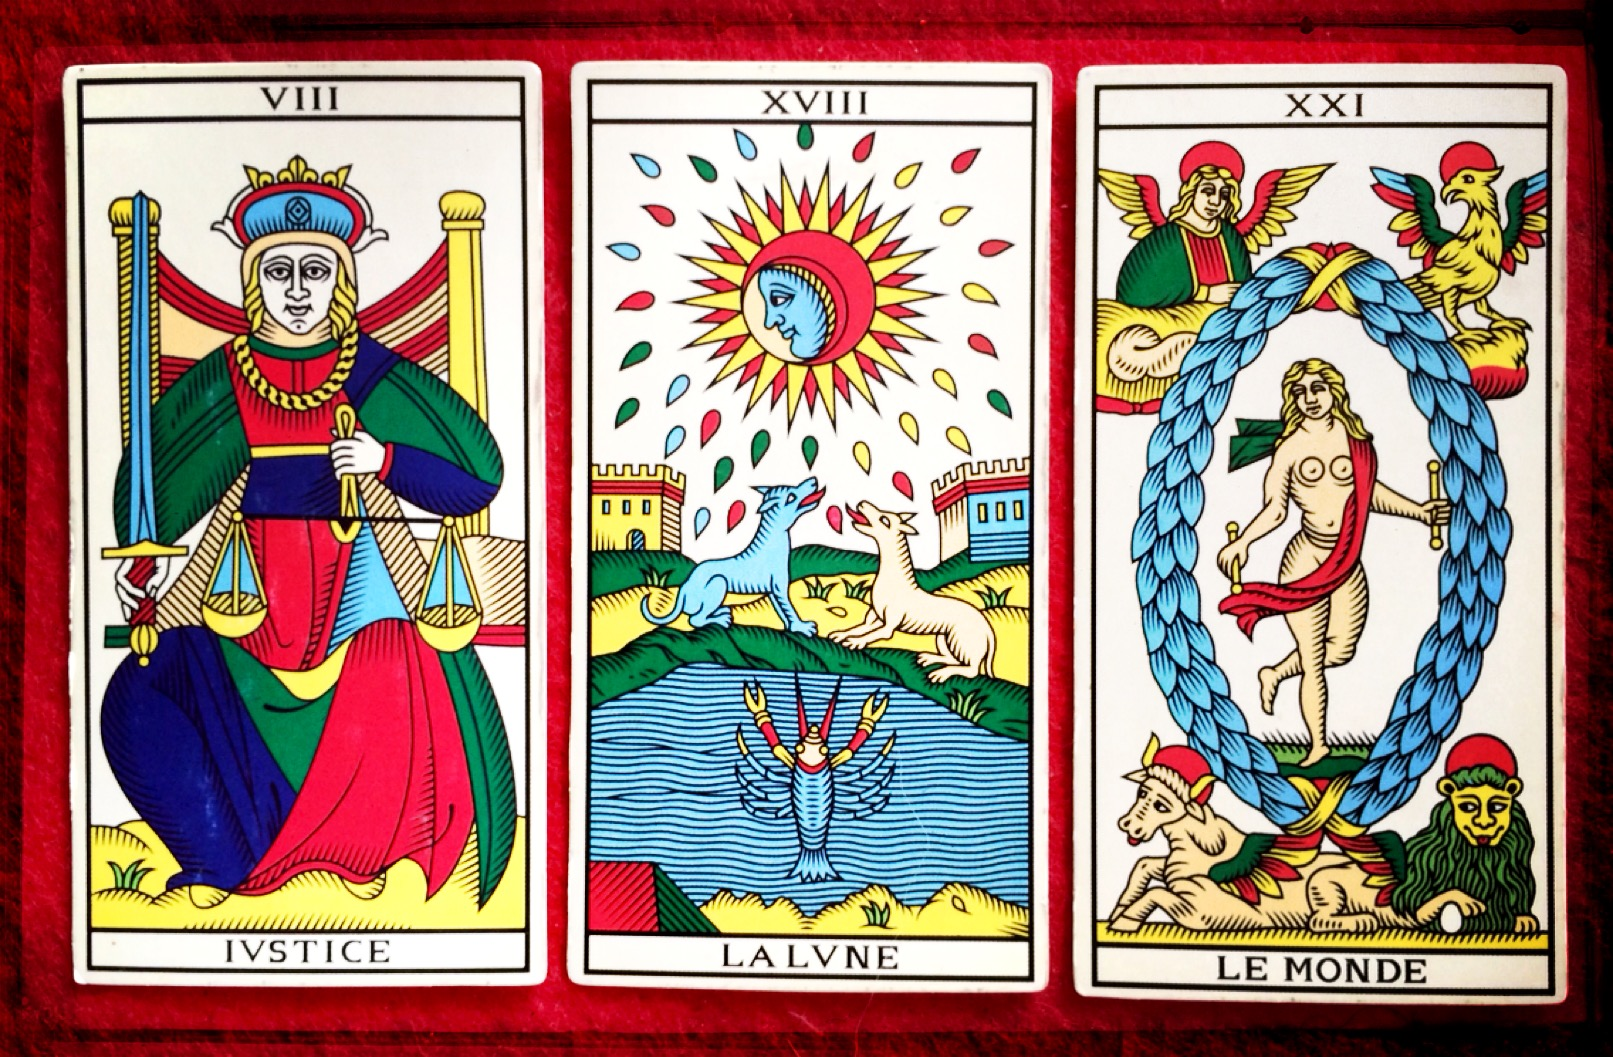 Marseille Tarot as reconstructed by Wilfried Houdoin, Millenium Edition (Photo: Camelia Elias)